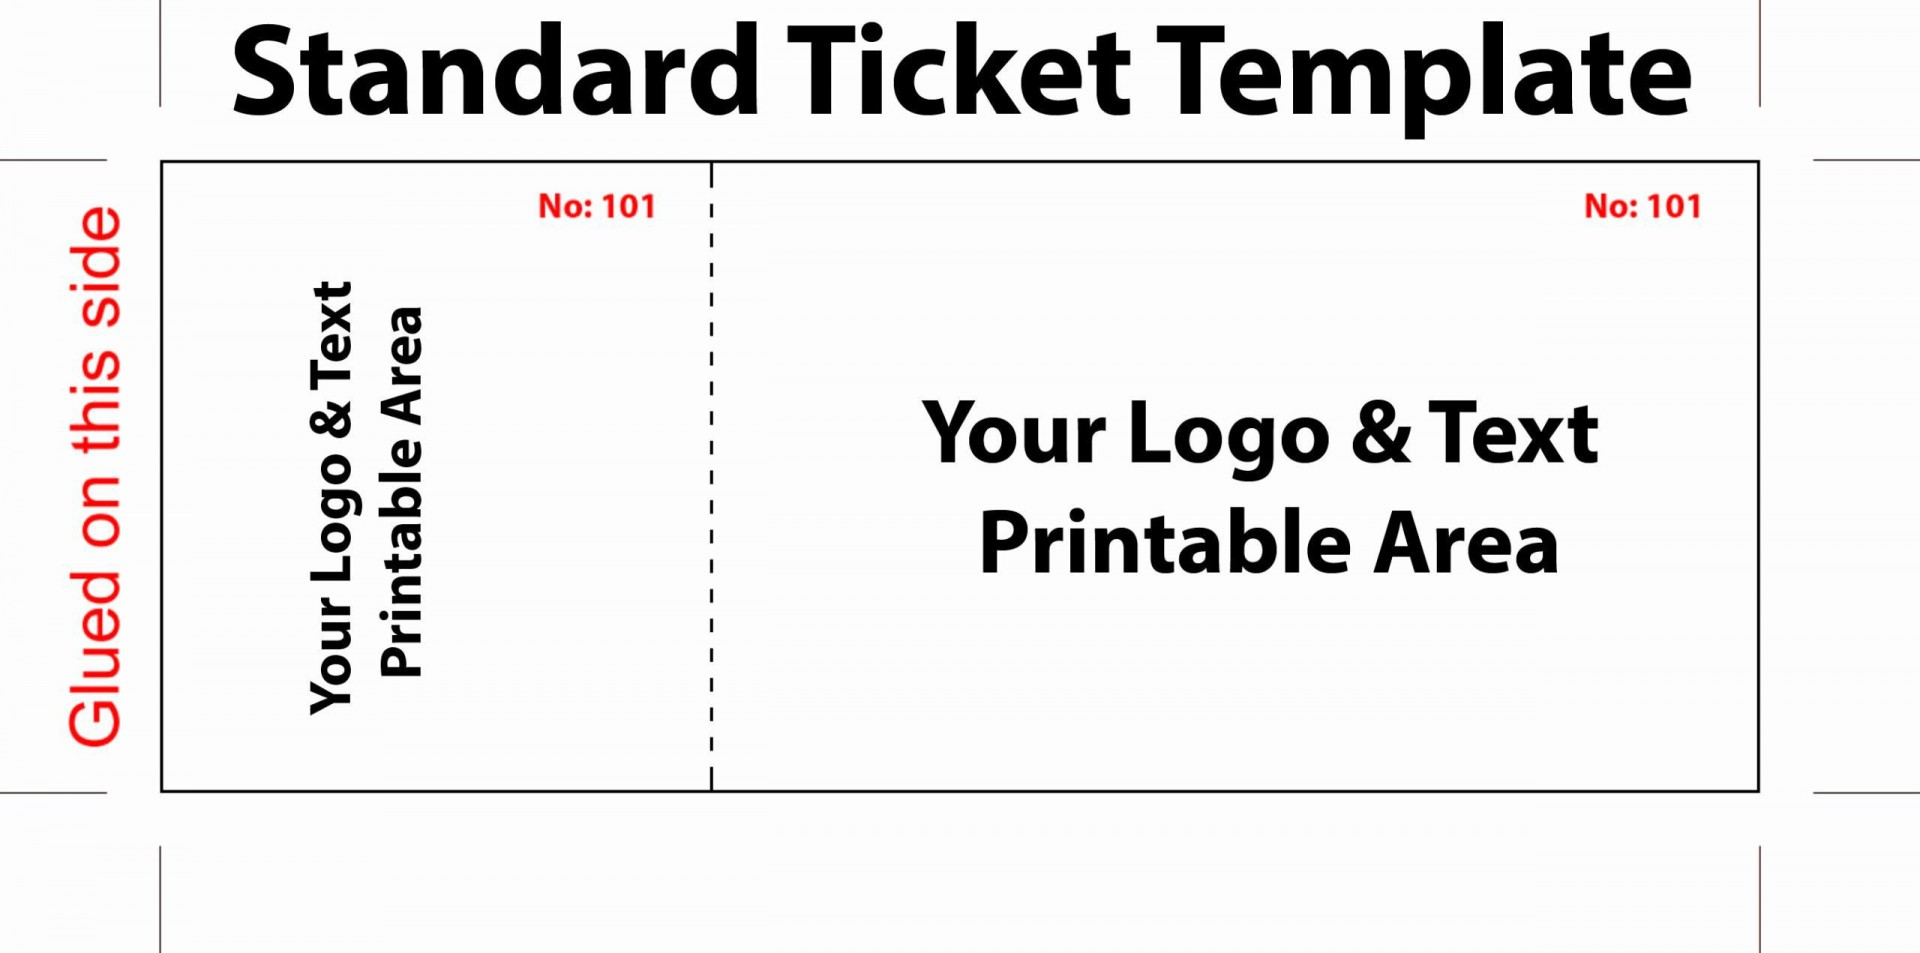 002 Striking Free Raffle Ticket Template Highest Quality  Word 10 Per Page For Mac Download1920